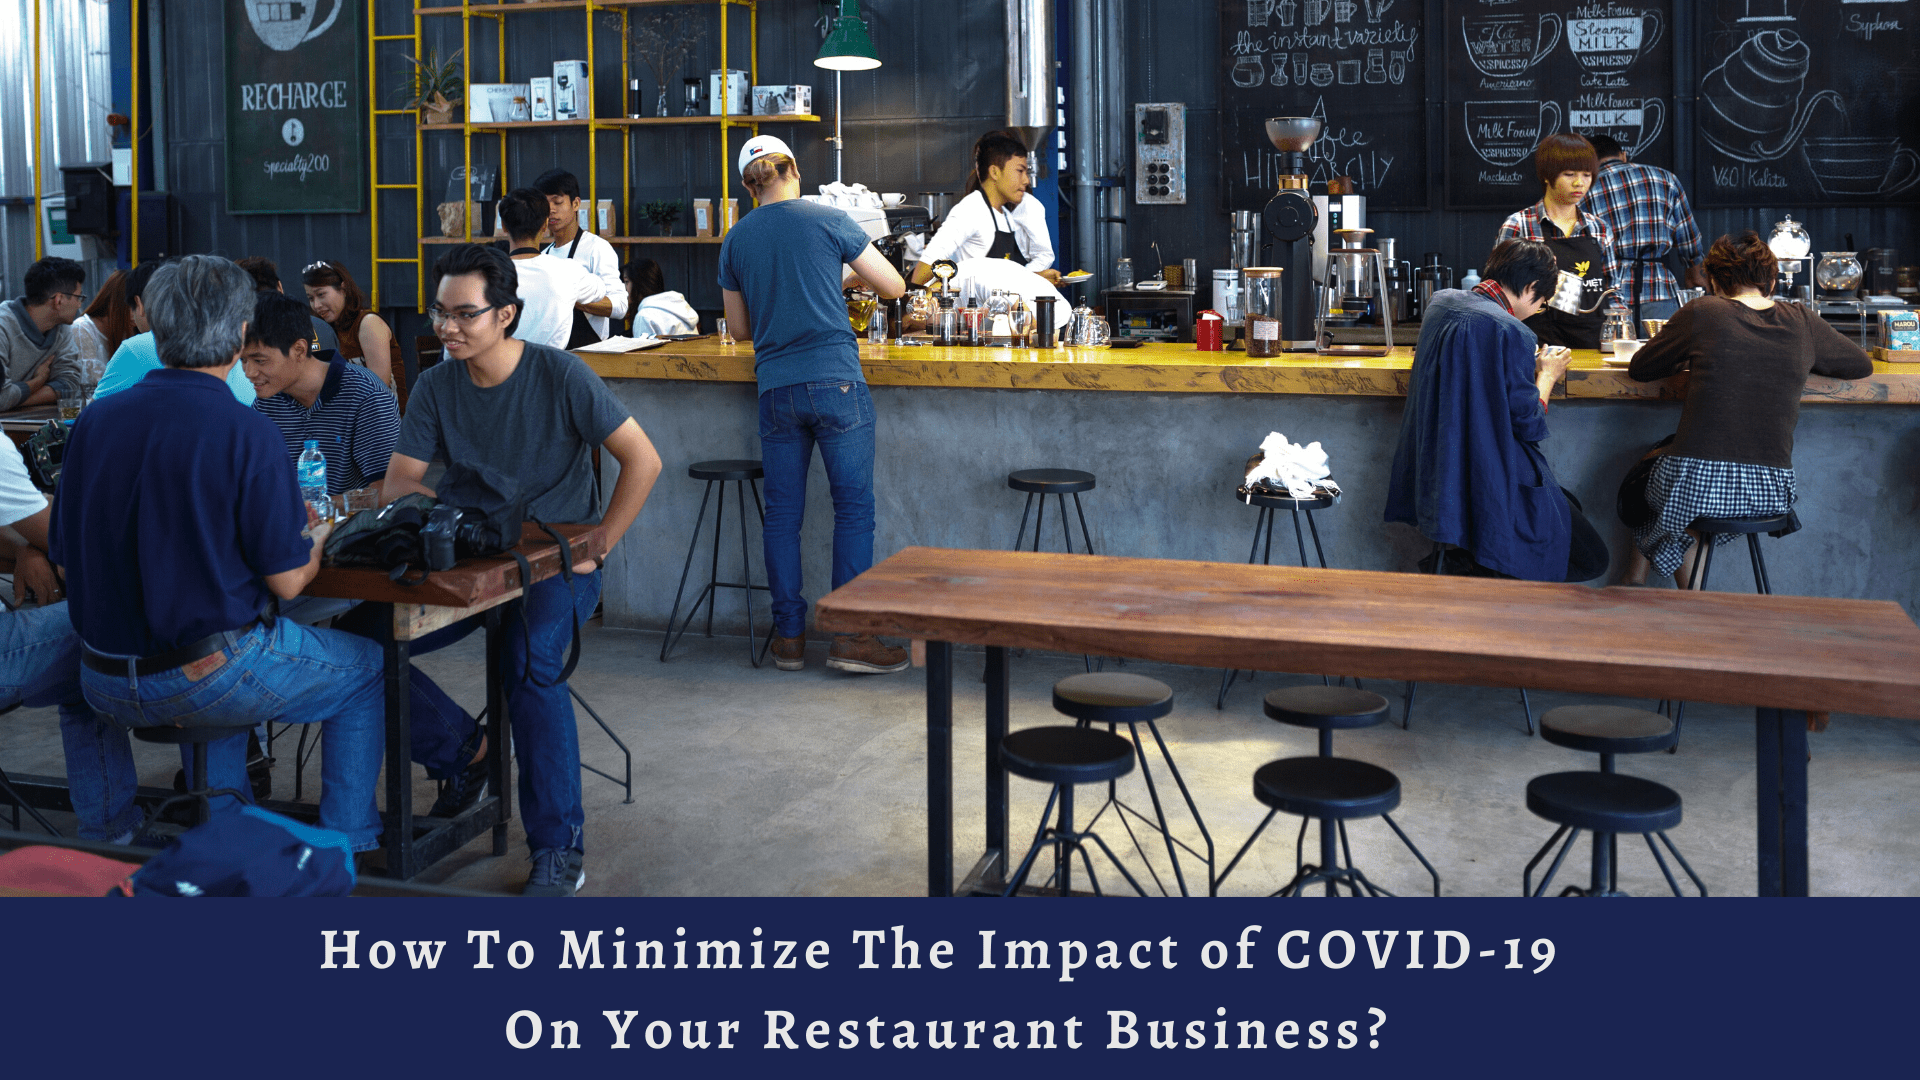 How To Minimize The Impact of COVID-19 On Your Restaurant Business?